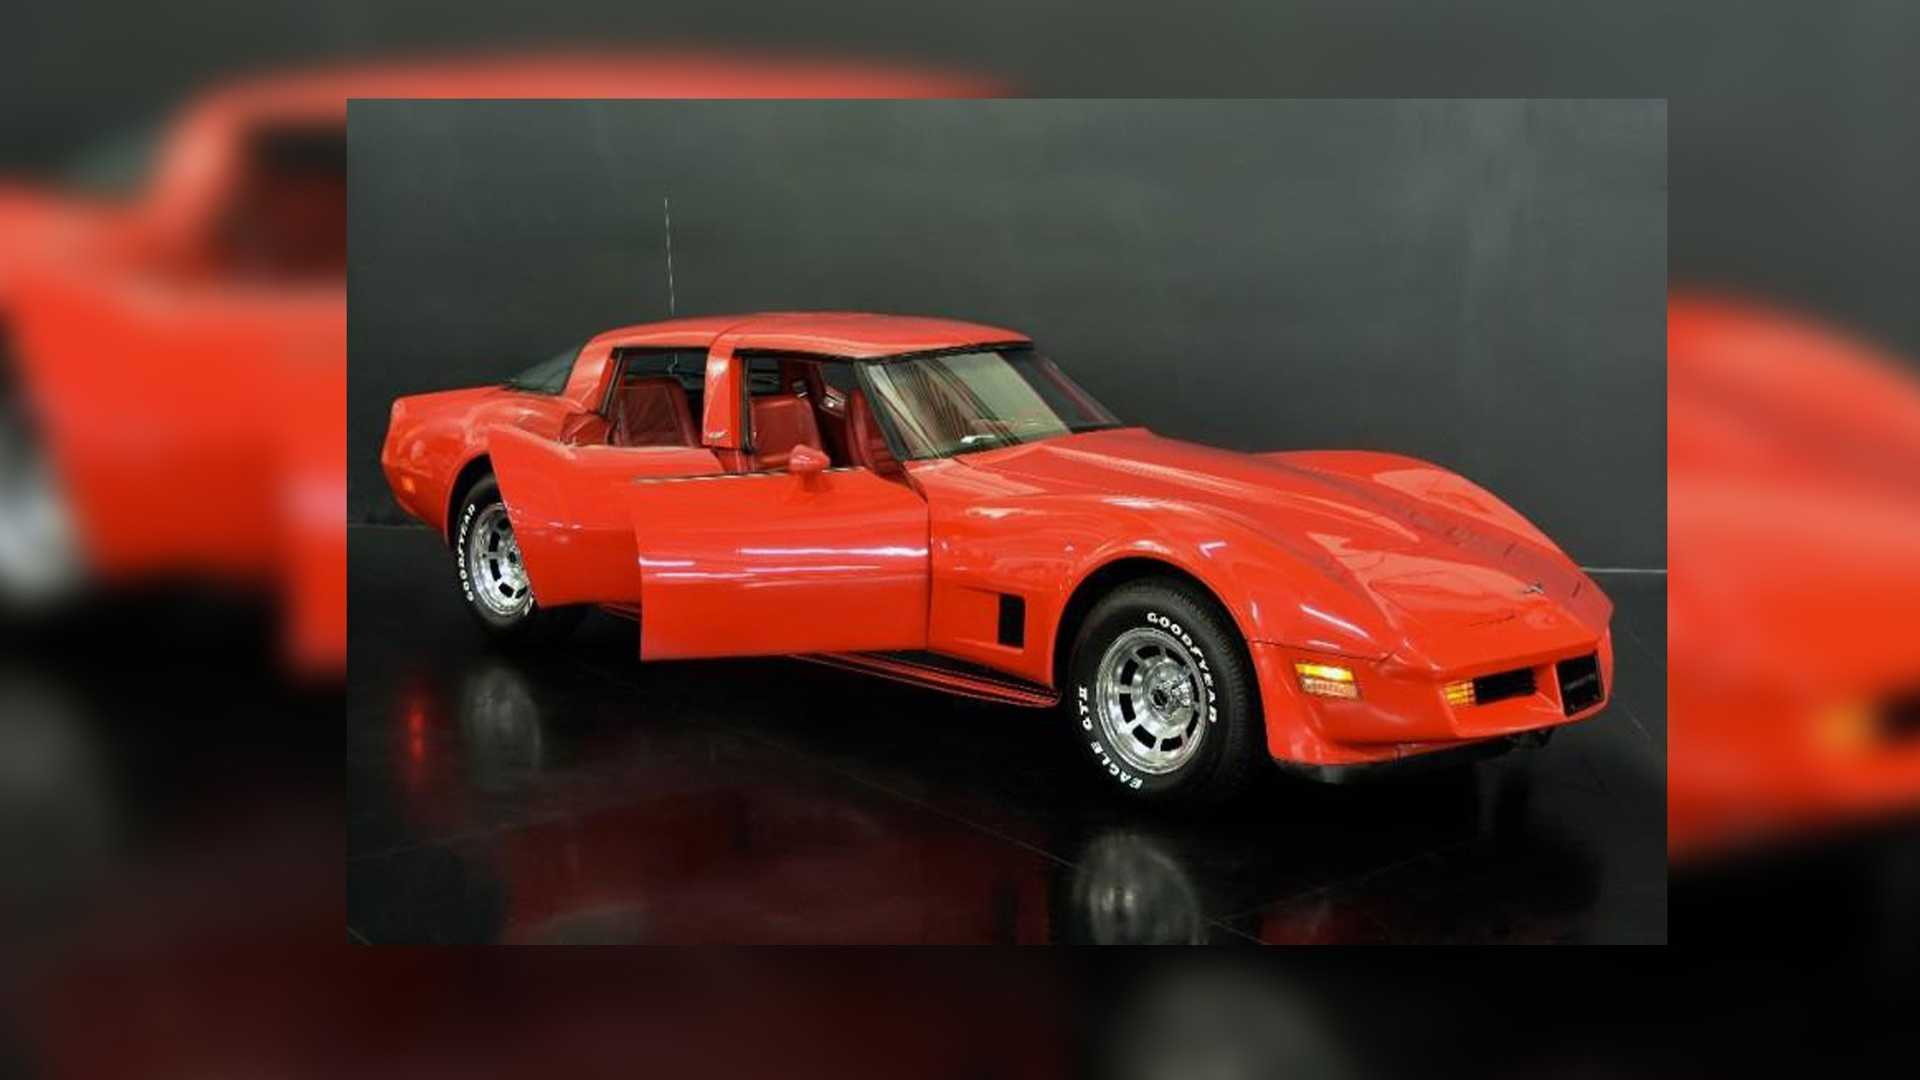 One of California's car dealerships has recently put up for sale a unique four-door Chevrolet Corvette coupe issued in the 1980